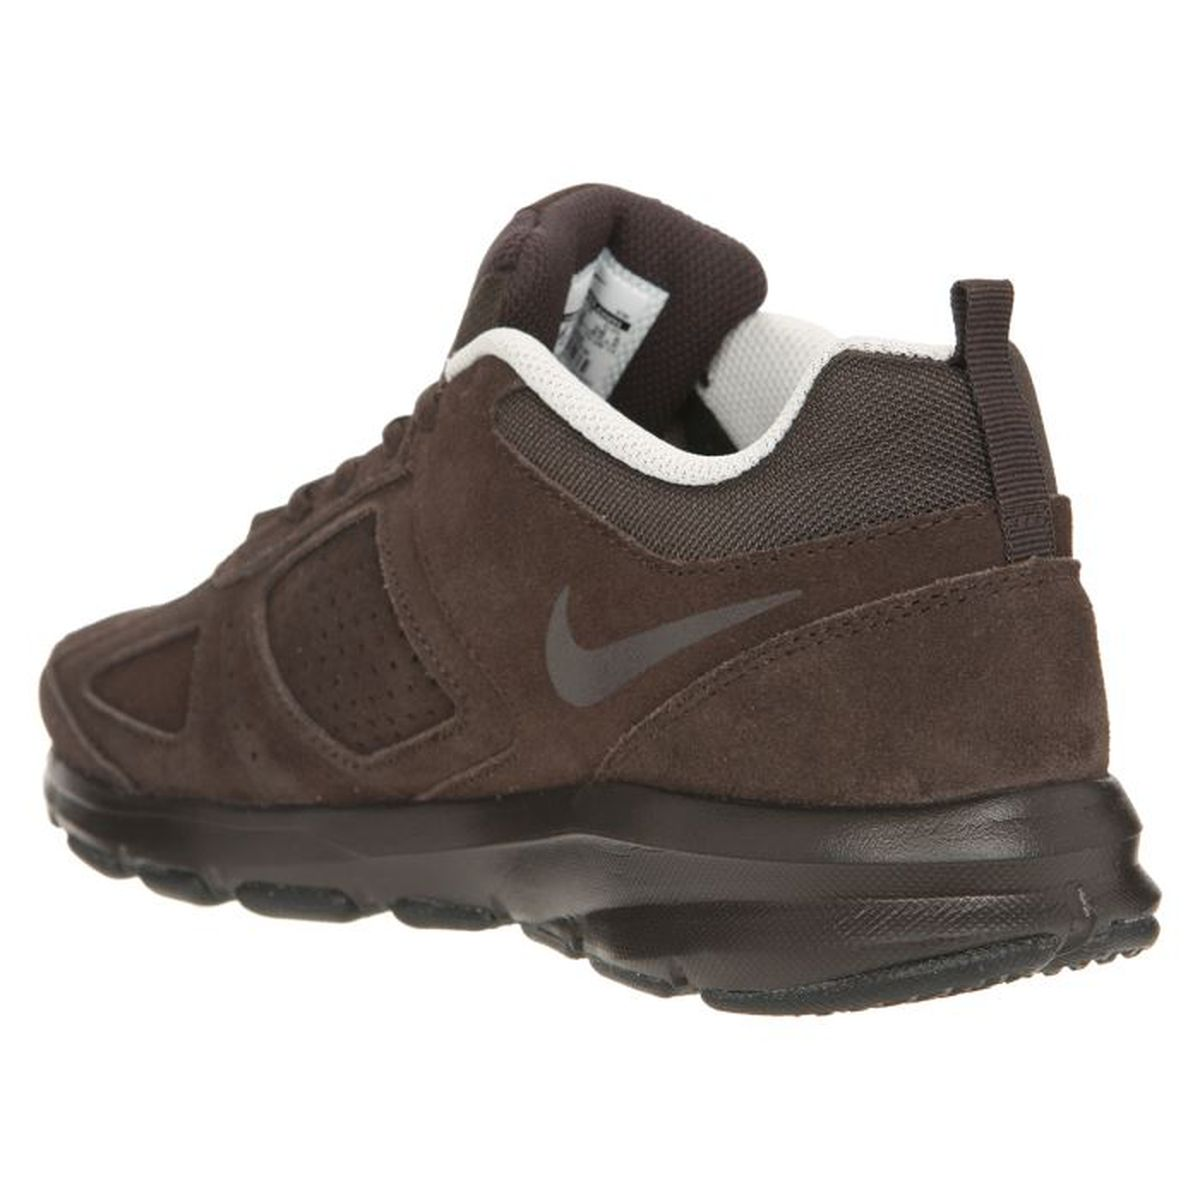 Achat Vente Marron Lite Homme T Chaussures Sportswear Nike Xi HYW9Ibe2ED